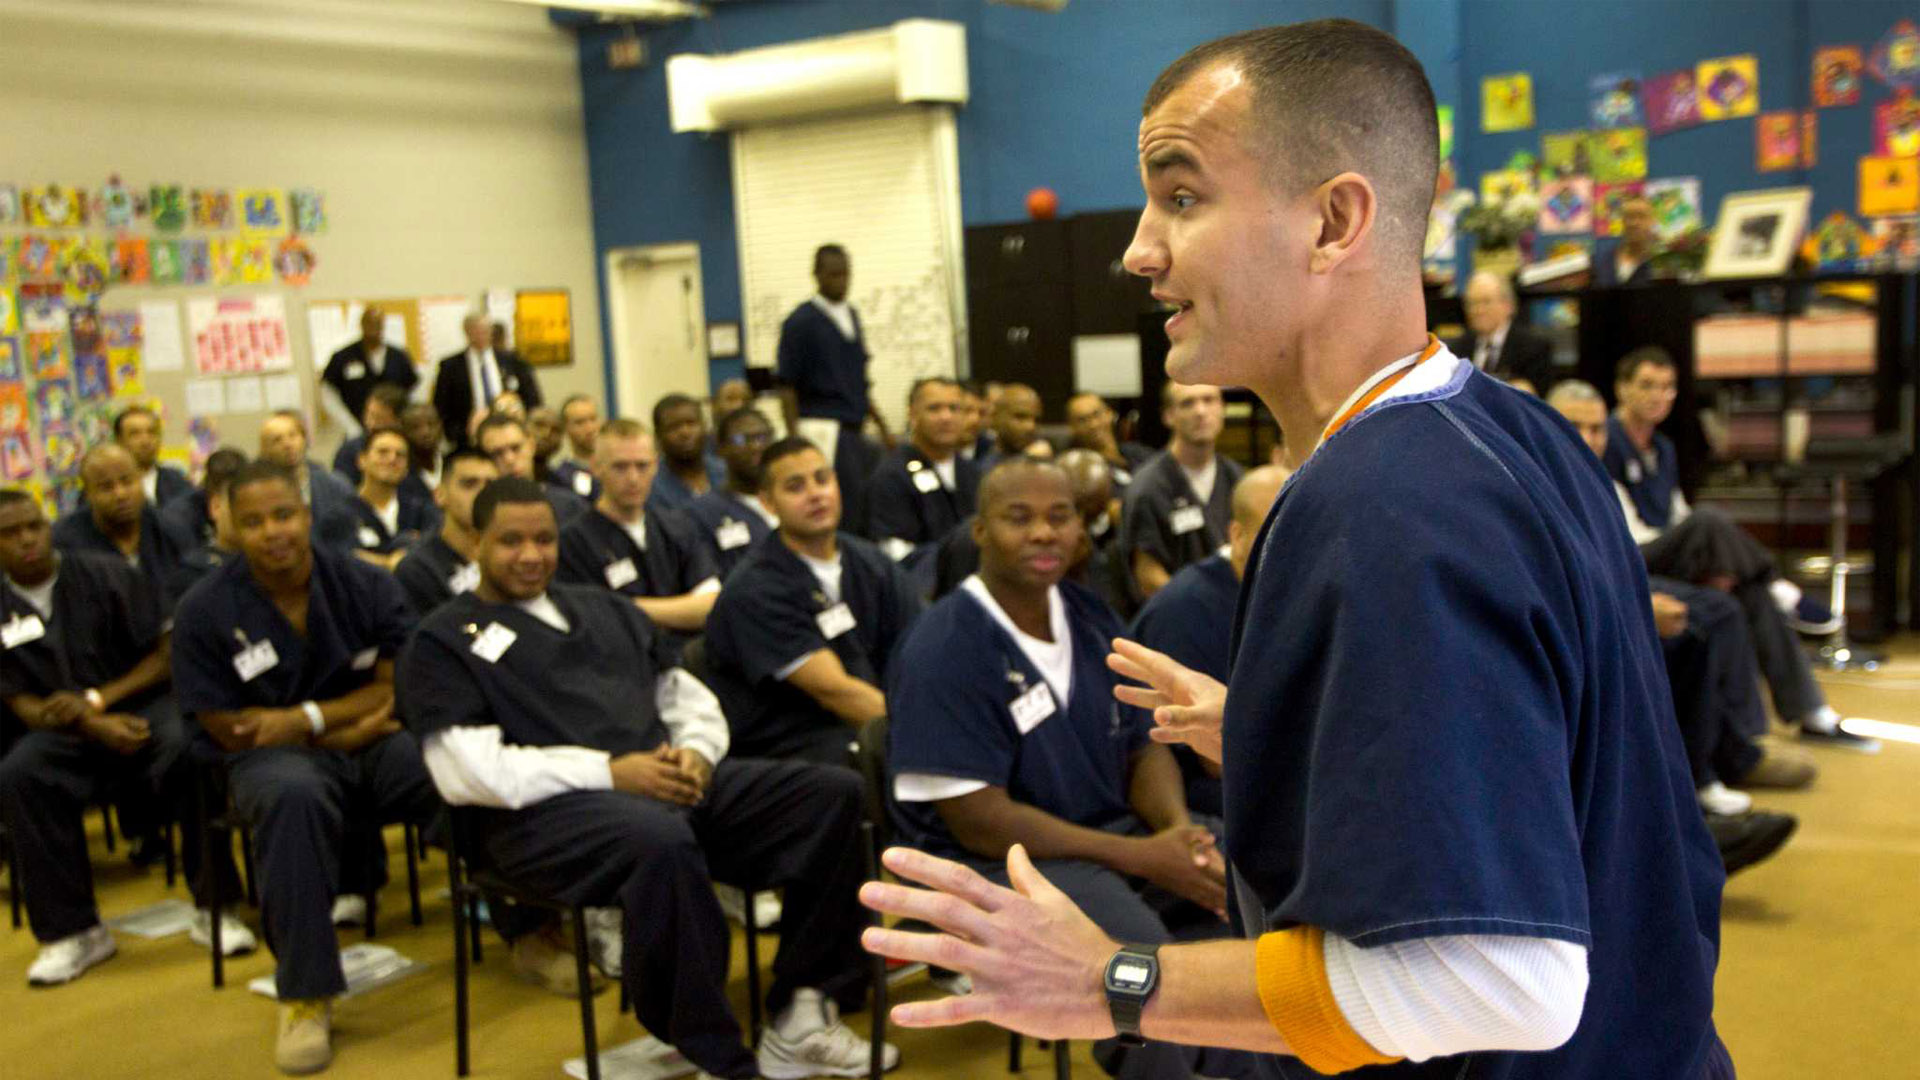 Morgan Crocker gives his business plan presentation during a Prison Entrepreneurship Program class at the Cleveland Correctional Center on Thursday, Feb. 14, 2013, in Cleveland, Texas. PEP is a privately-run program that trains inmates how to run their own businesses once they are paroled. ( Brett Coomer / Houston Chronicle )